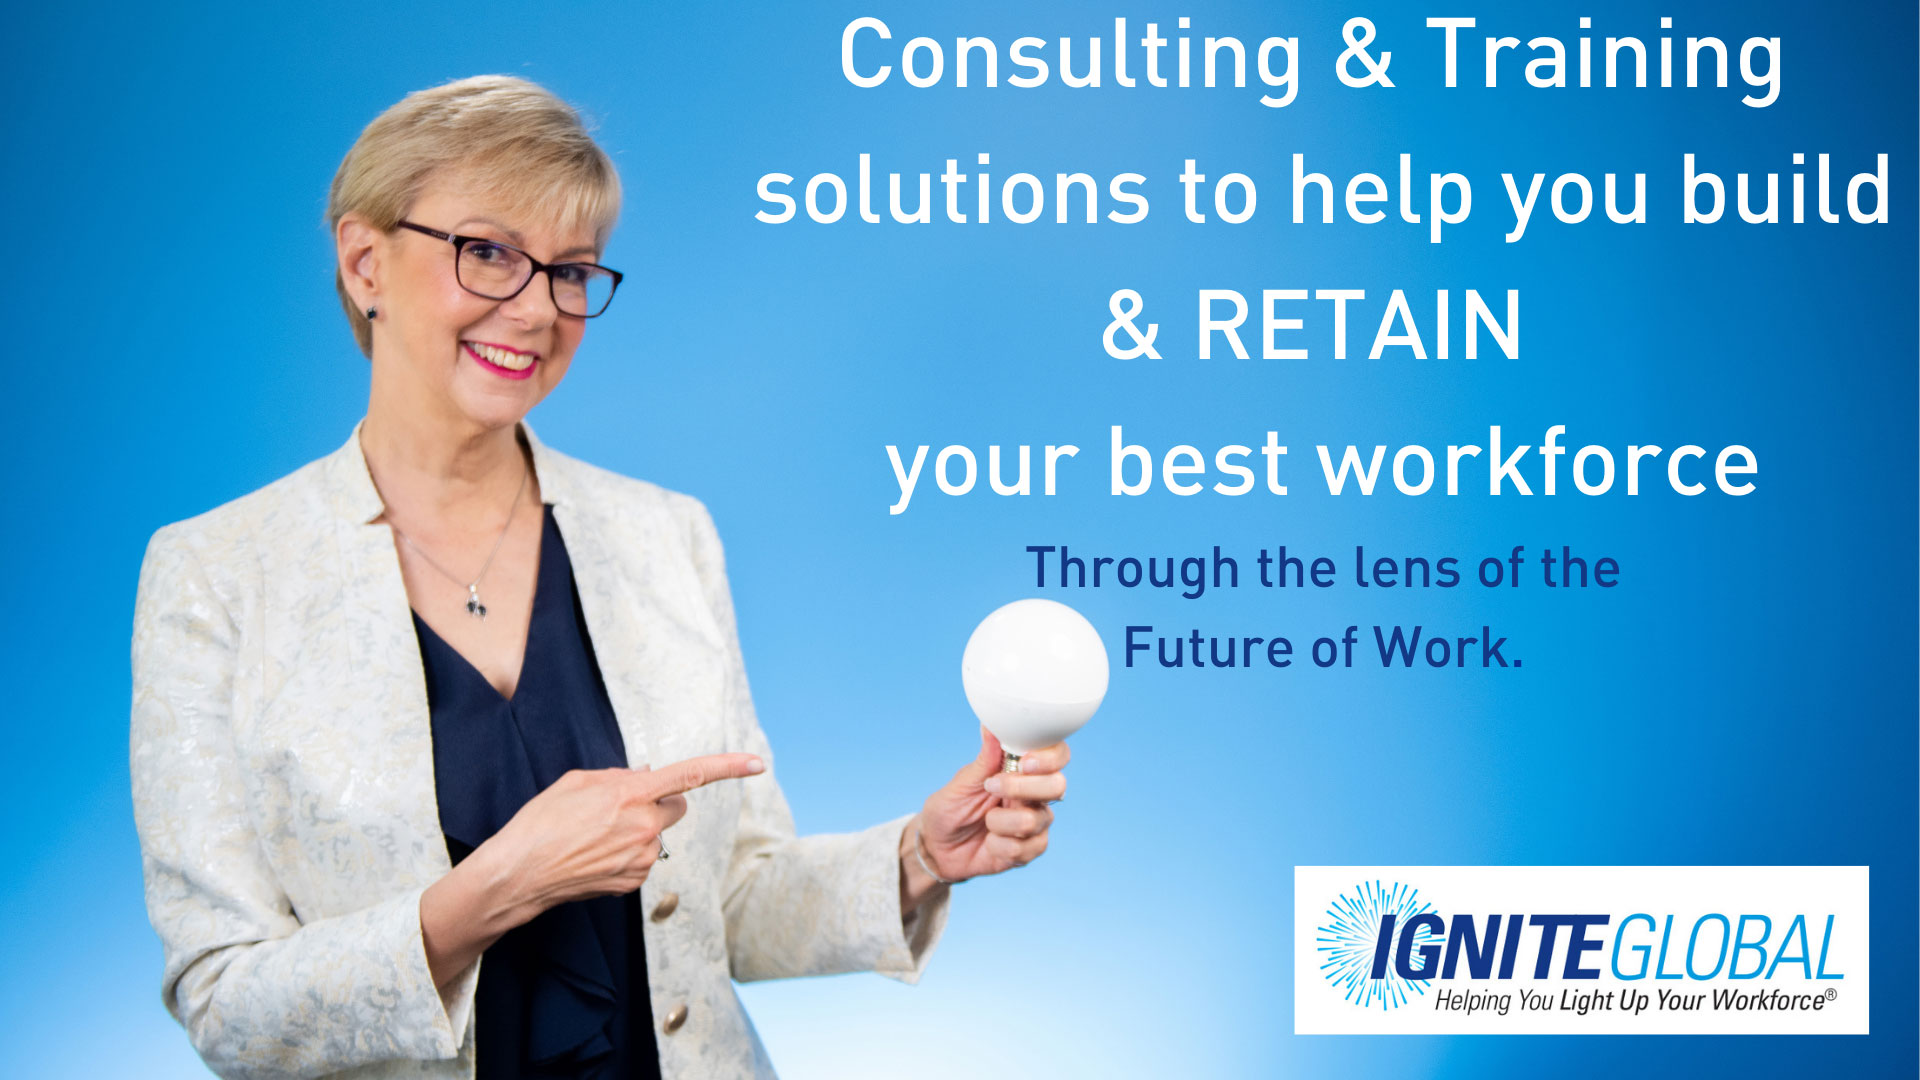 LEARN HOW TO WIN AT THE NEW WORLD OF WORK!